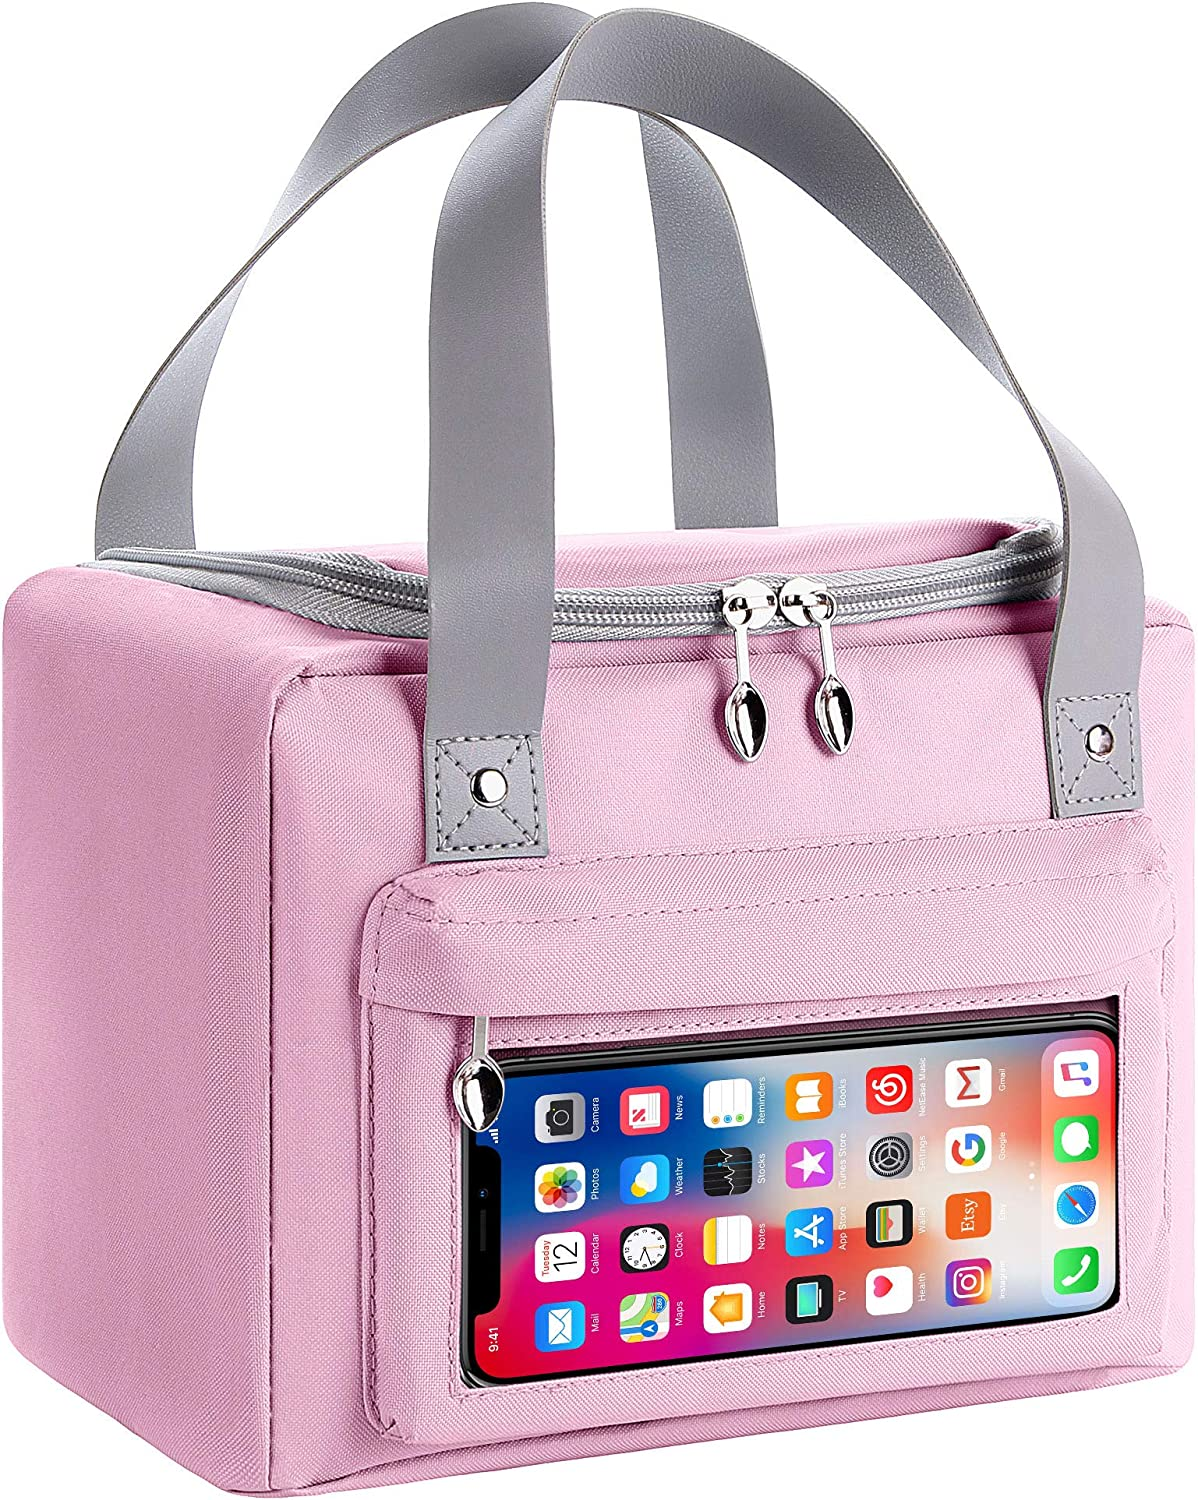 Cellphone lunch box